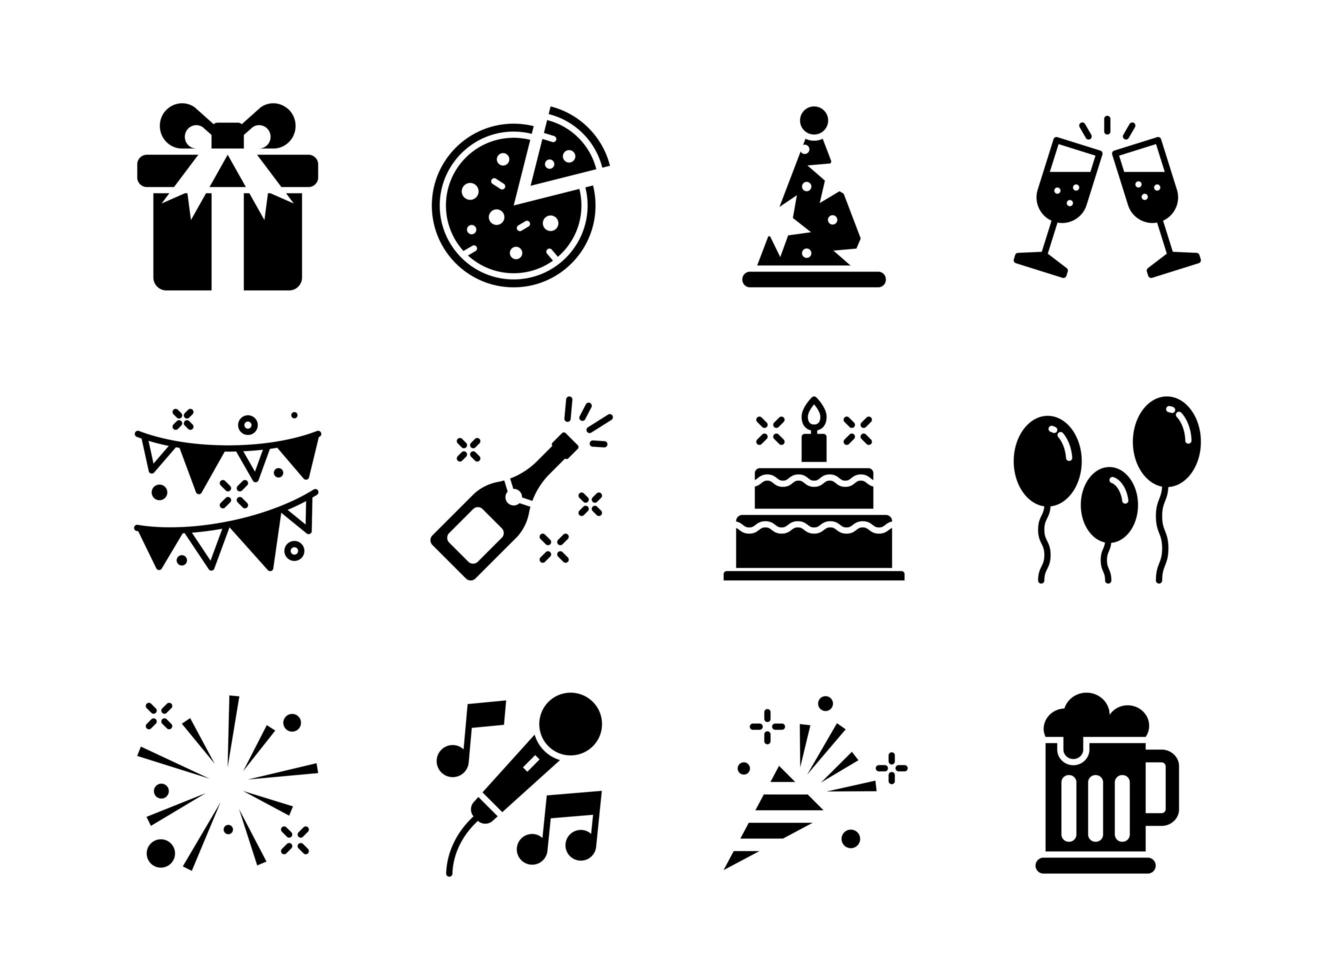 Party icon set glyph style. Symbols for website, print, magazine, app and design. vector